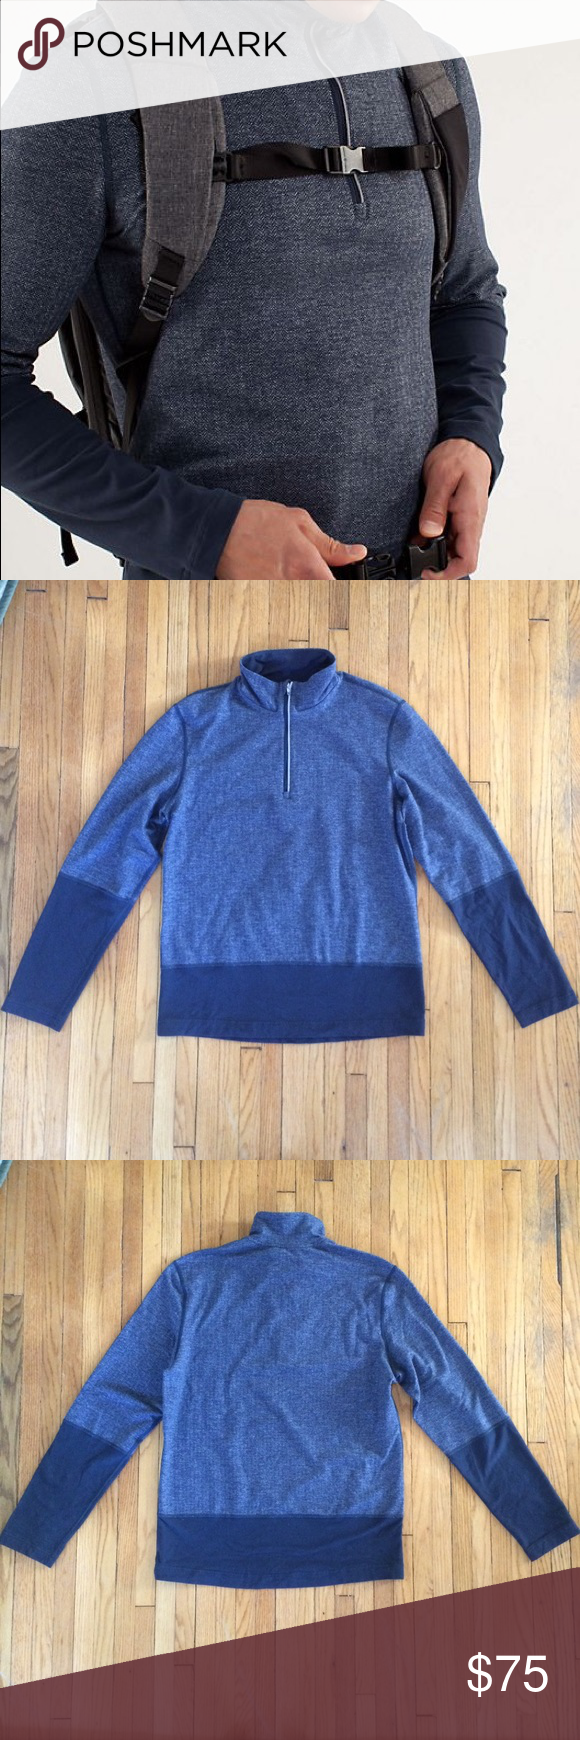 Lululemon Quarter Zip Pullover Lululemon navy blue herringbone colorblock men's pullover. This is in great used condition. Rip tag is gone. Fits like a men's small, but I'll put the measurements up soon. Make me an offer. Discount on bundles of two or more. lululemon athletica Jackets & Coats Performance Jackets